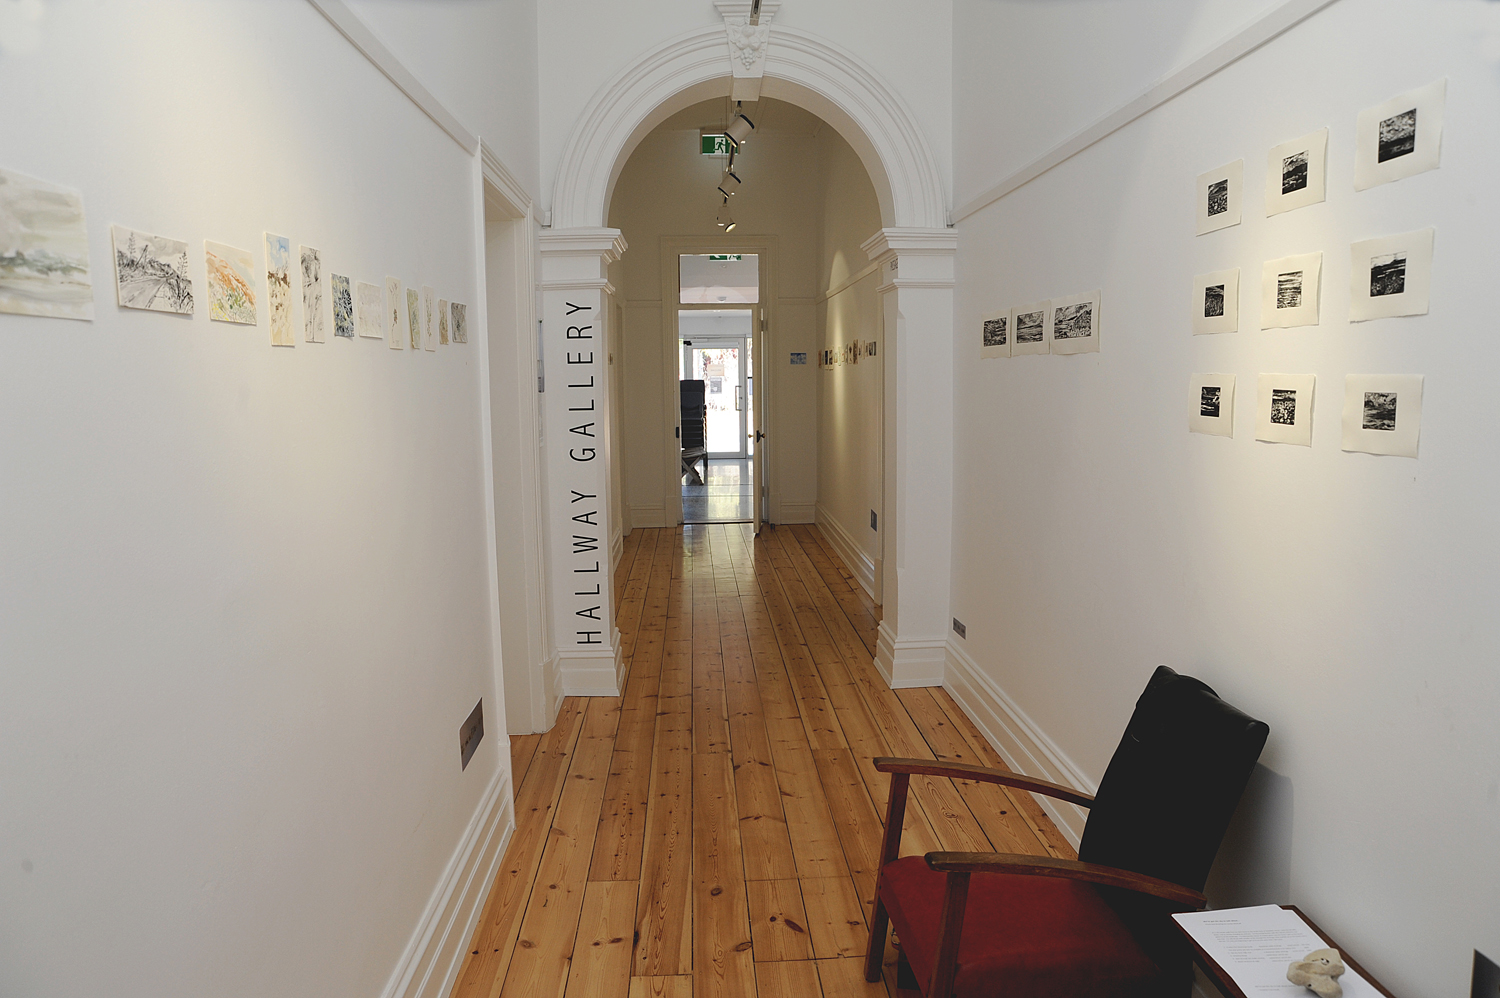 Etchings and postcard sketches lining the Hallway Gallery at Sauerbier House, Port Noarlunga